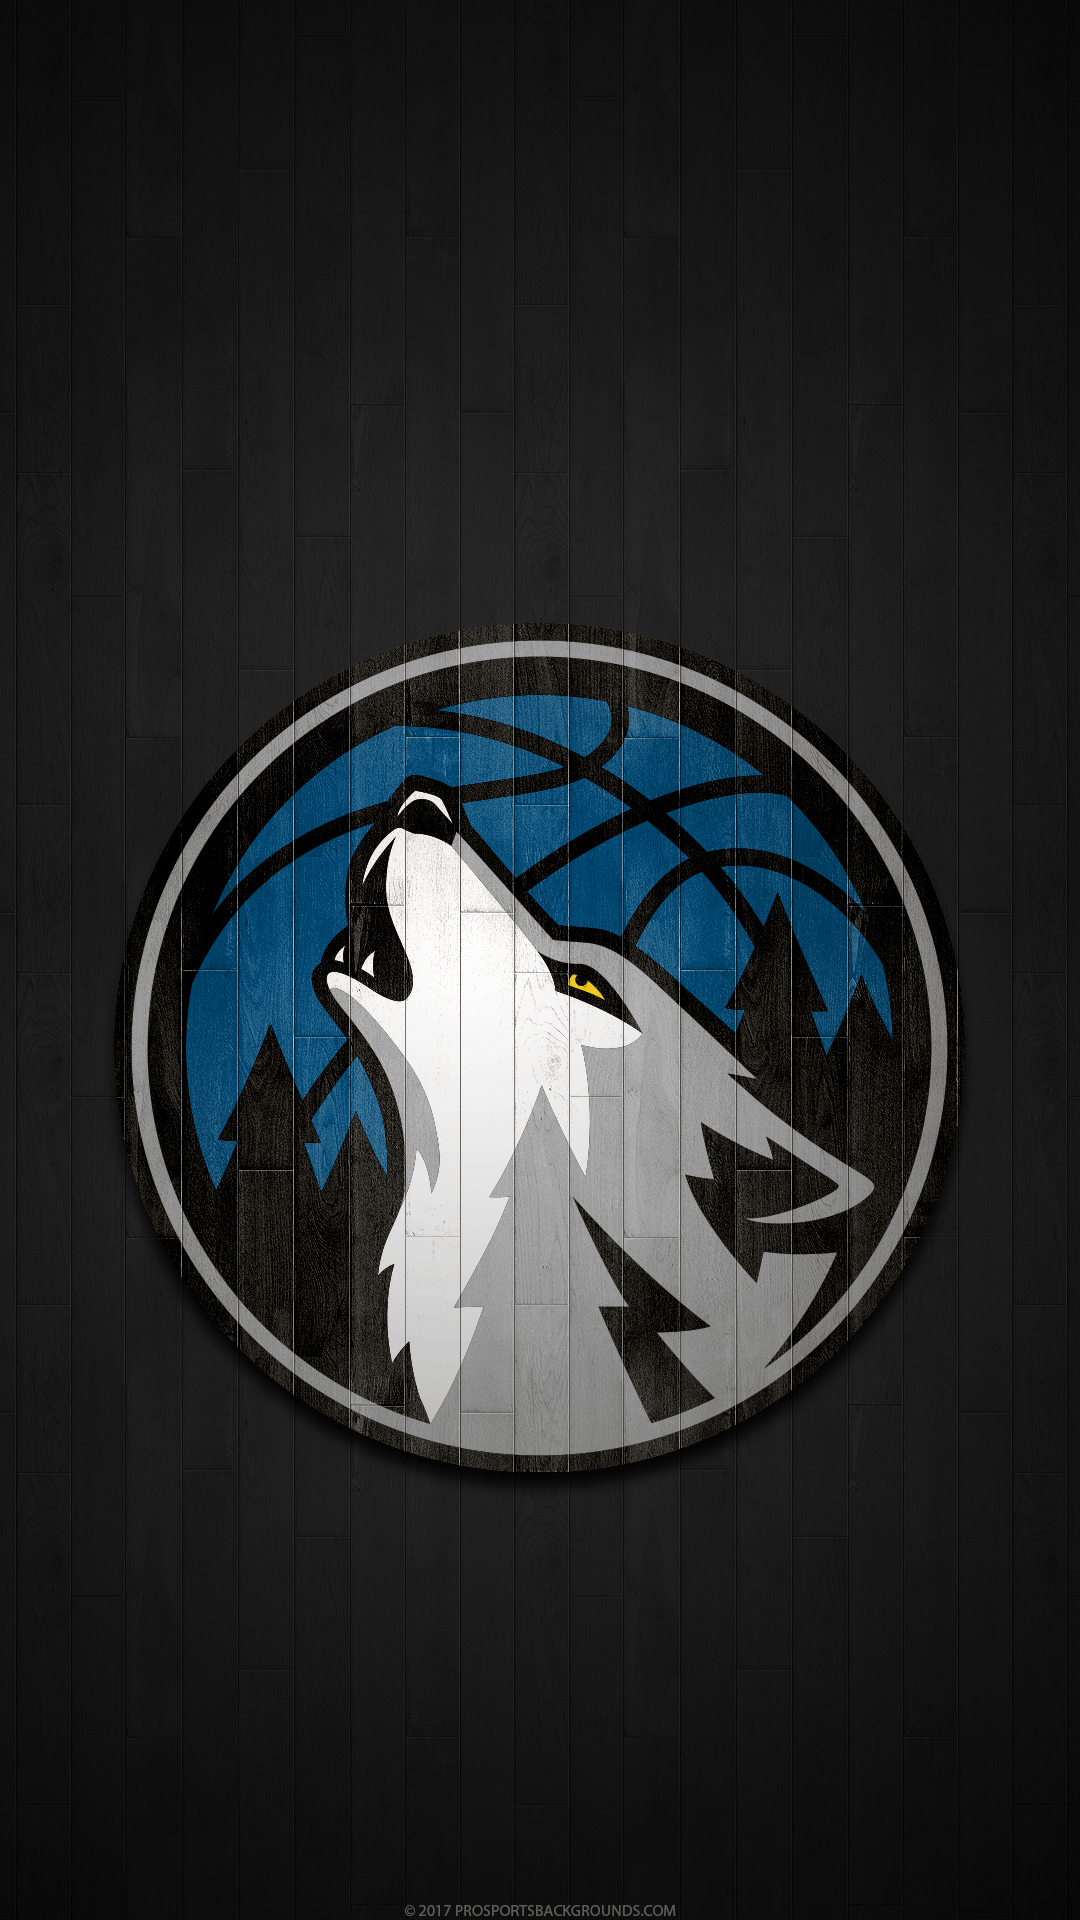 1080x1920 2018 Minnesota Timberwolves Wallpapers - PC |iPhone| Android